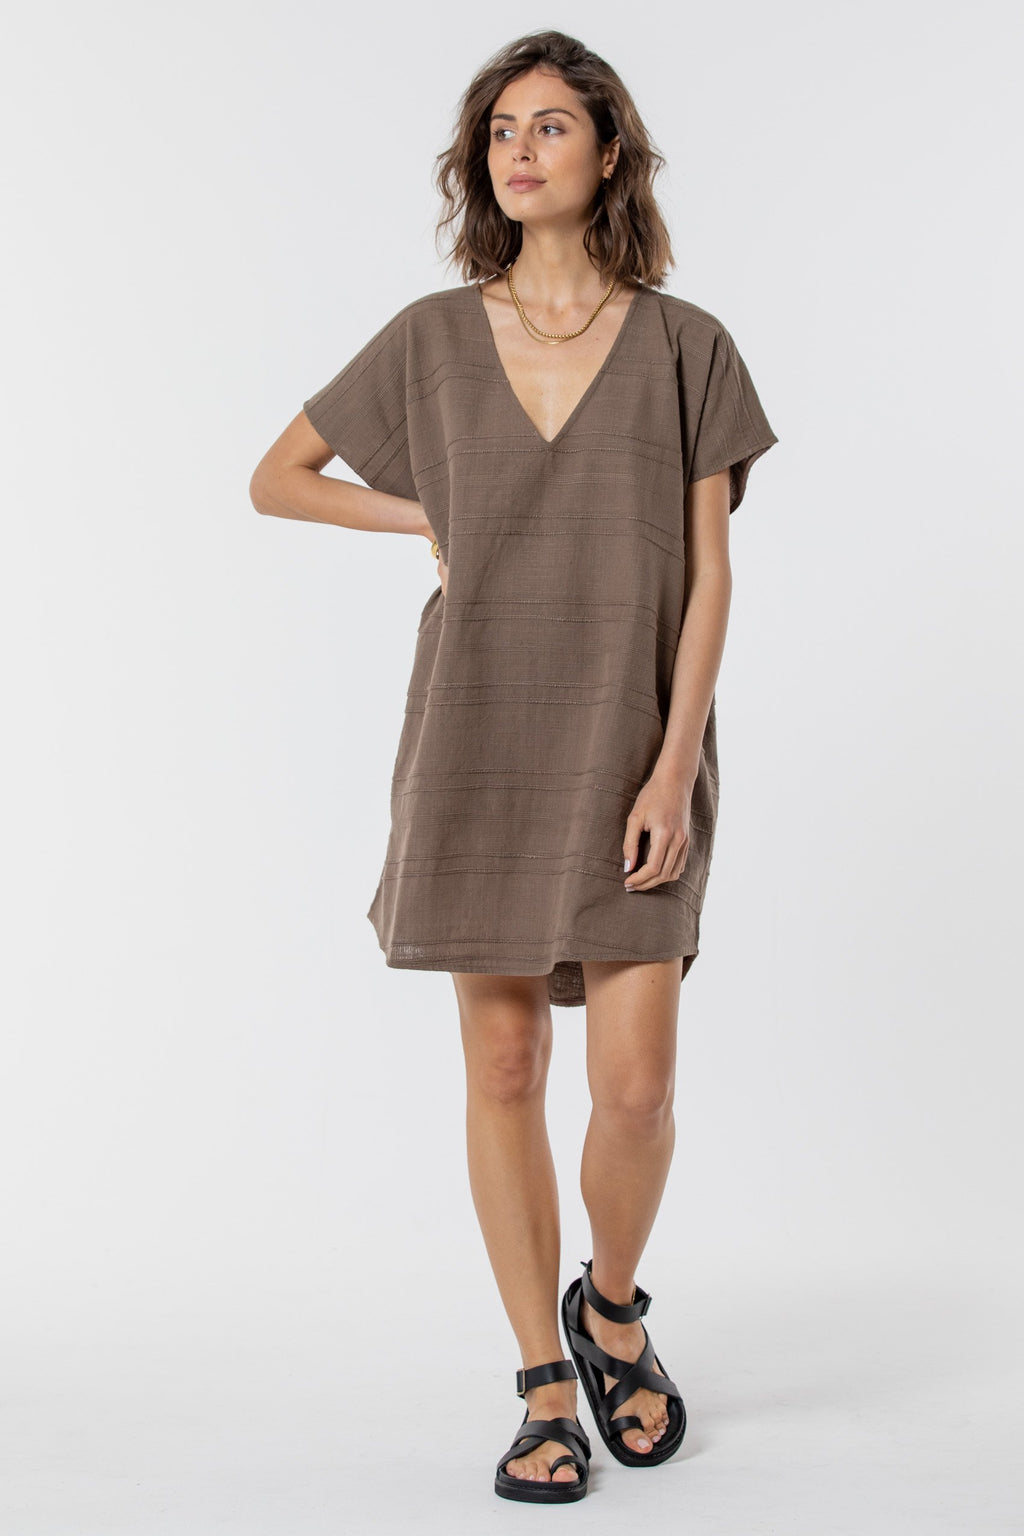 Saint Helena BRIGHTON BEACH DRESS - BARK